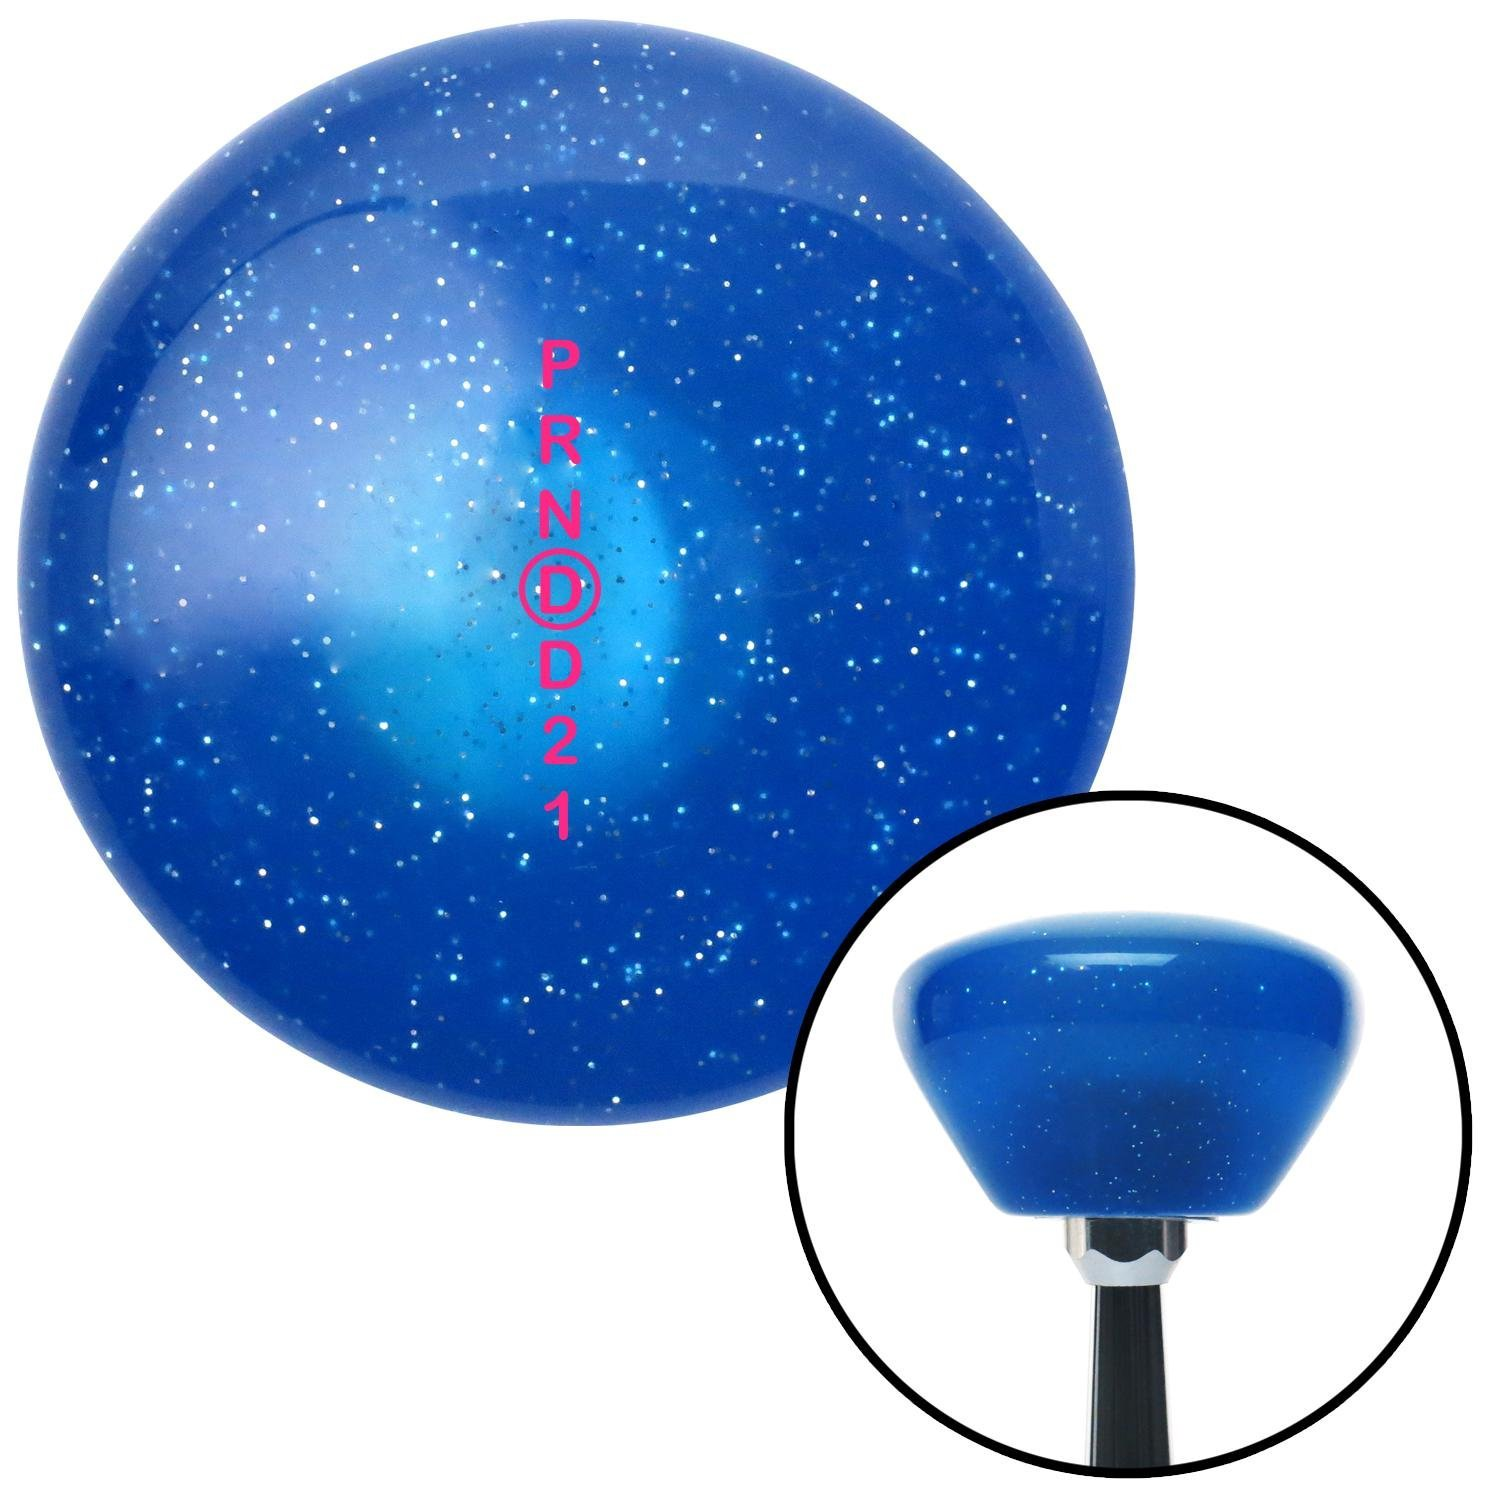 American Shifter 191799 Blue Retro Metal Flake Shift Knob with M16 x 1.5 Insert Pink Shift Pattern 28n